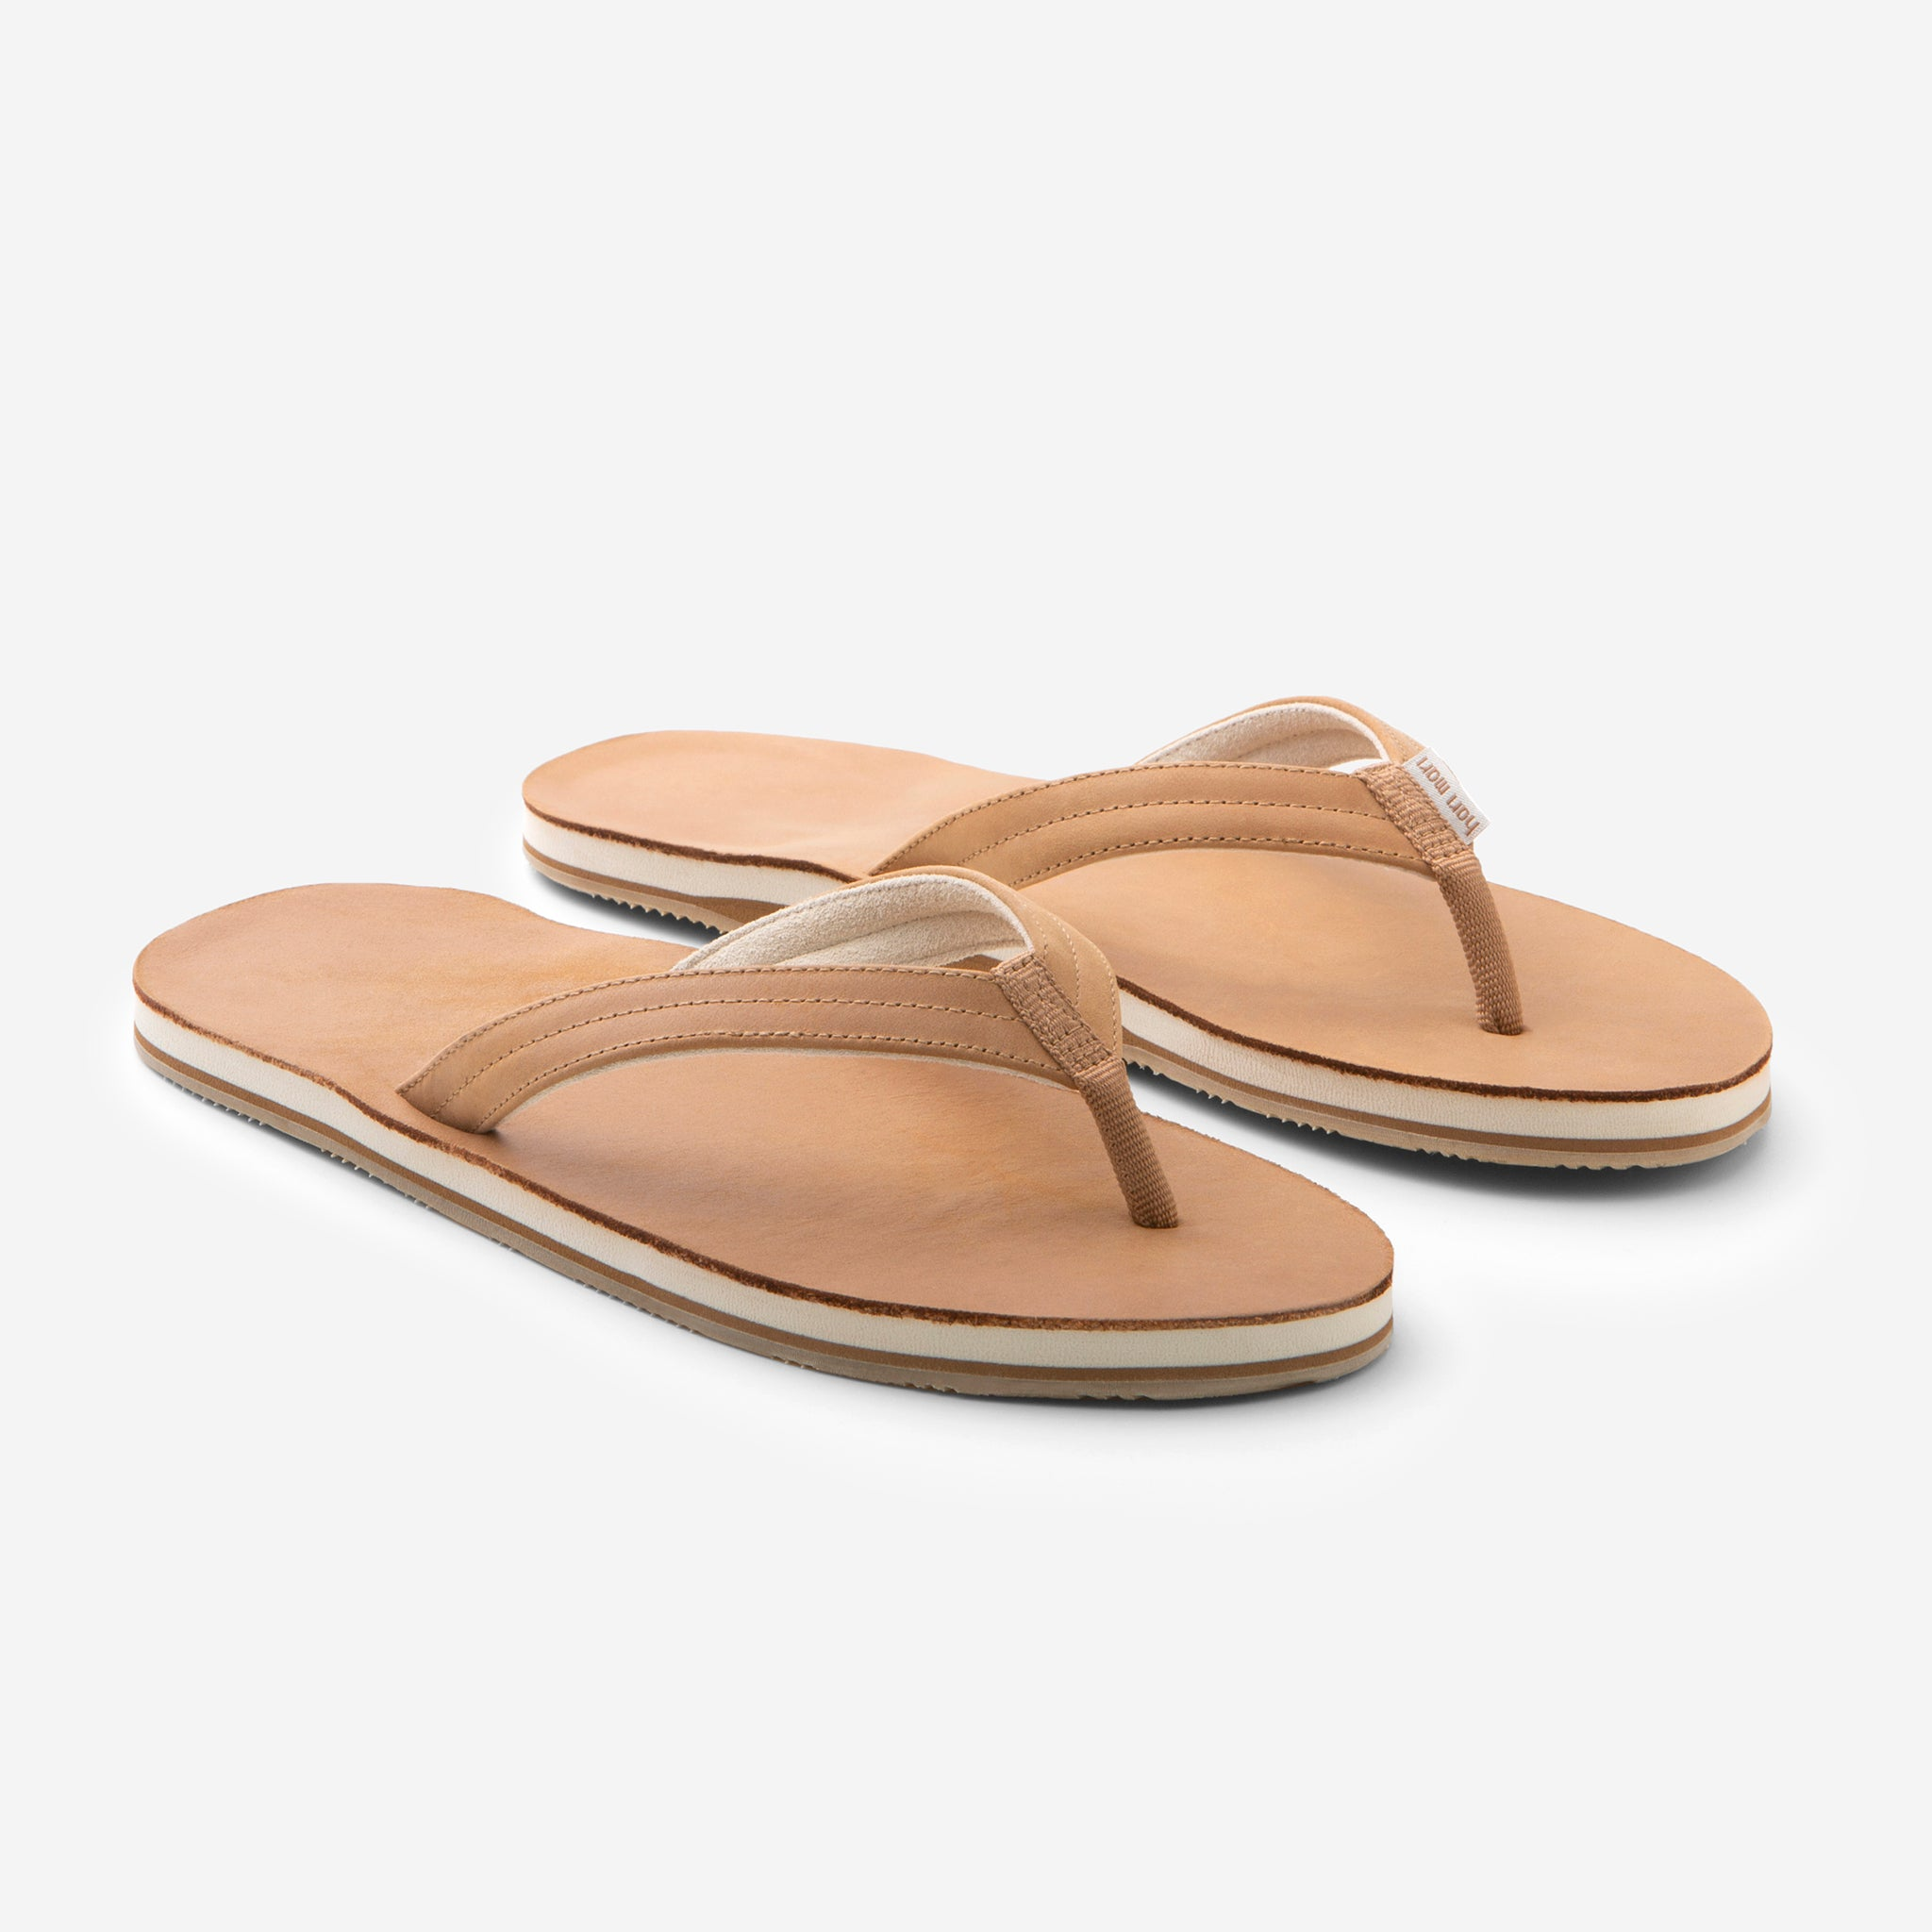 Lakes - Women's - Tan/Natural - 45 Degree View